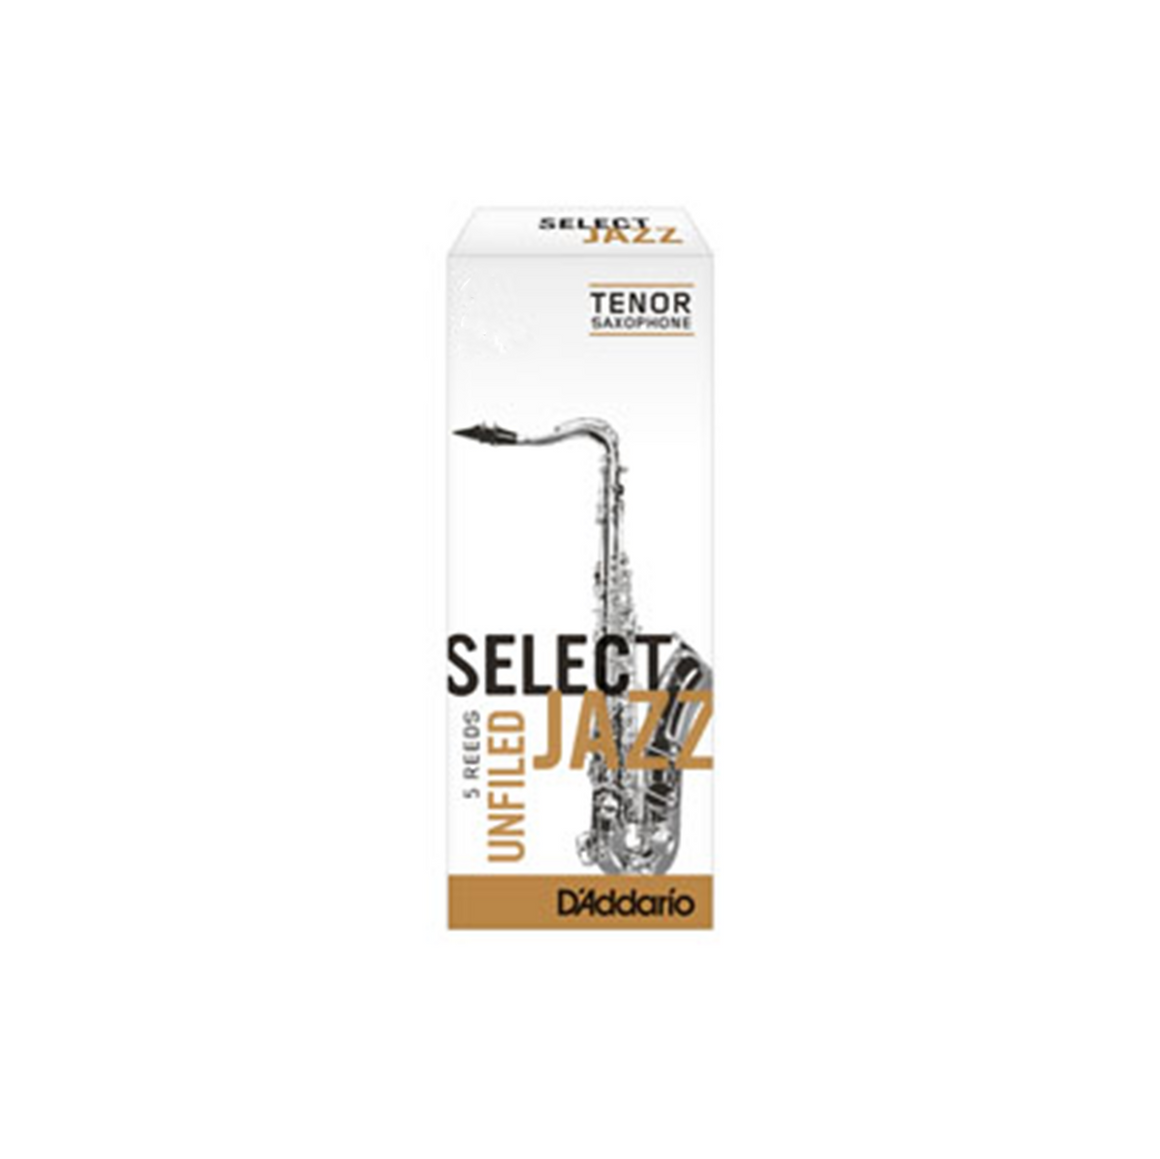 D'Addario Select Jazz Tenor Sax Reed Unfiled